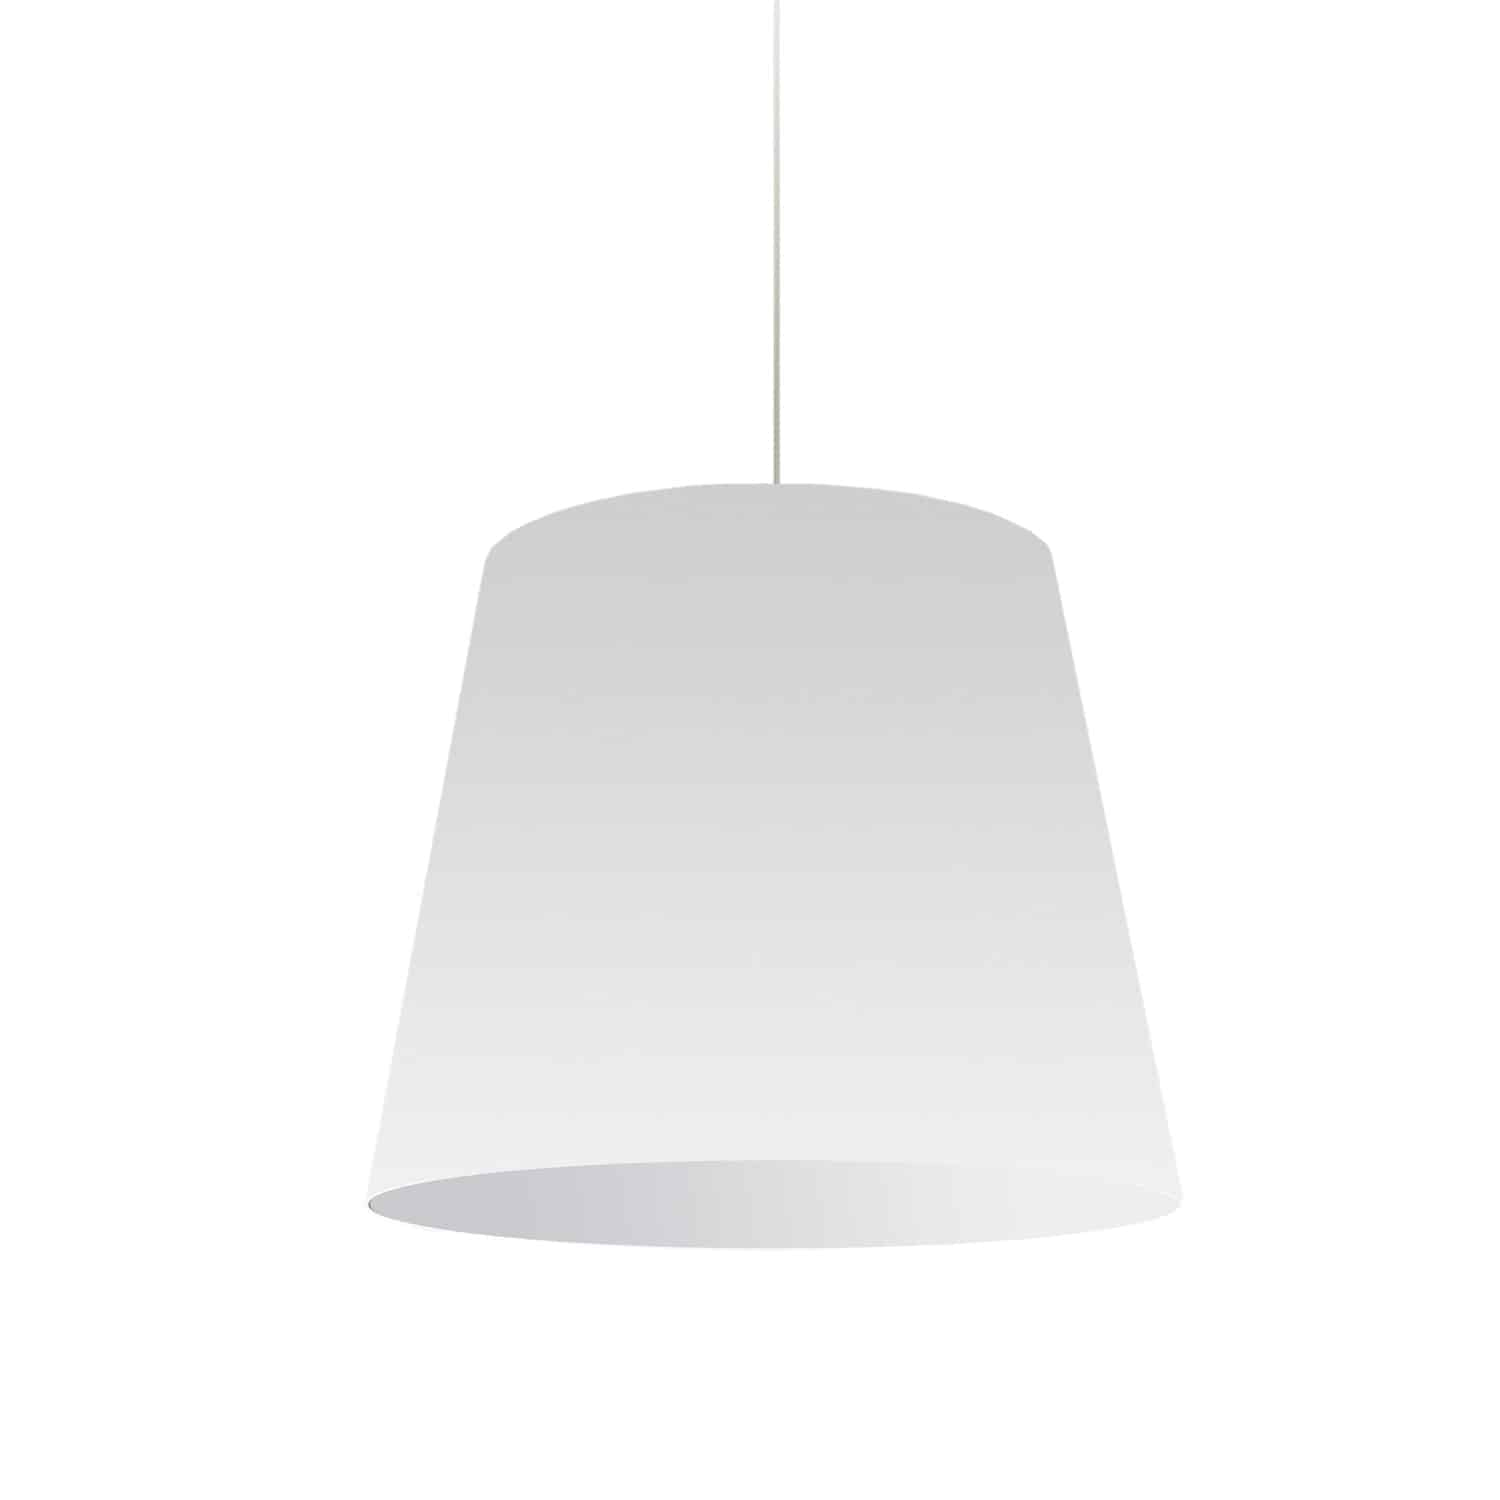 1 Light Oversized Drum Pendant Medium Wht Shade